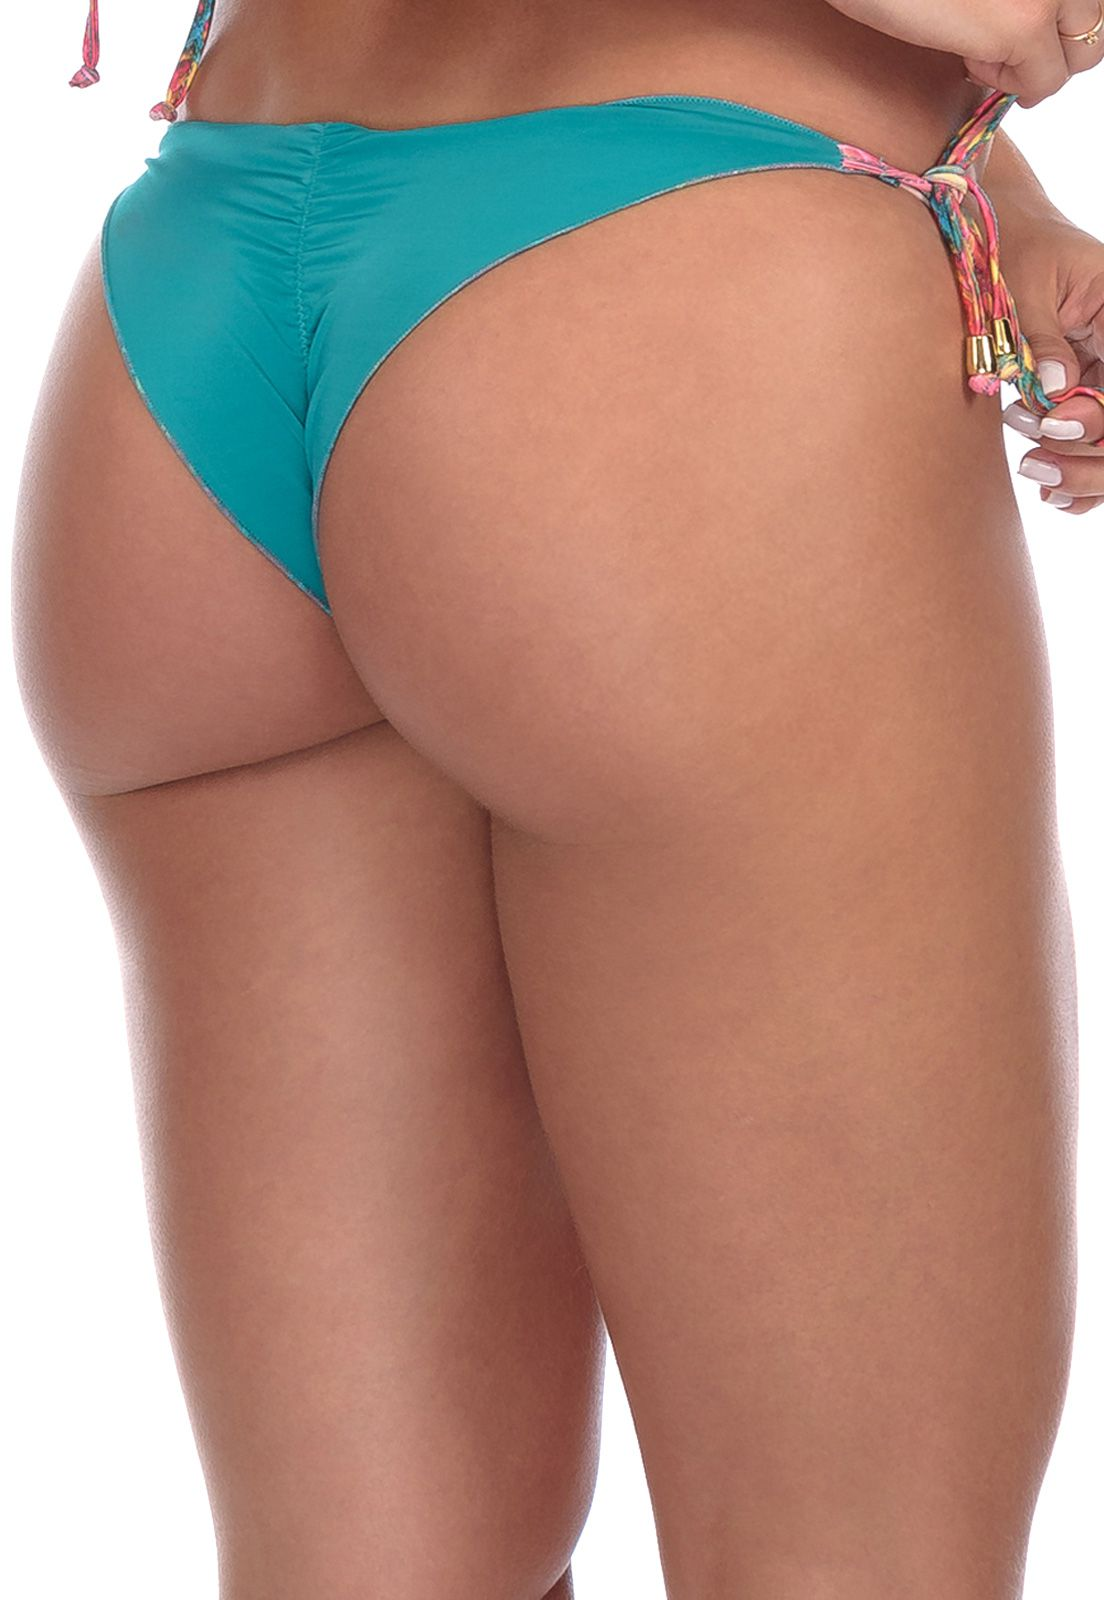 Biquíni Bottom Ripple Lacinho Flavia Donadio Beachwear Cartagena Dupla face